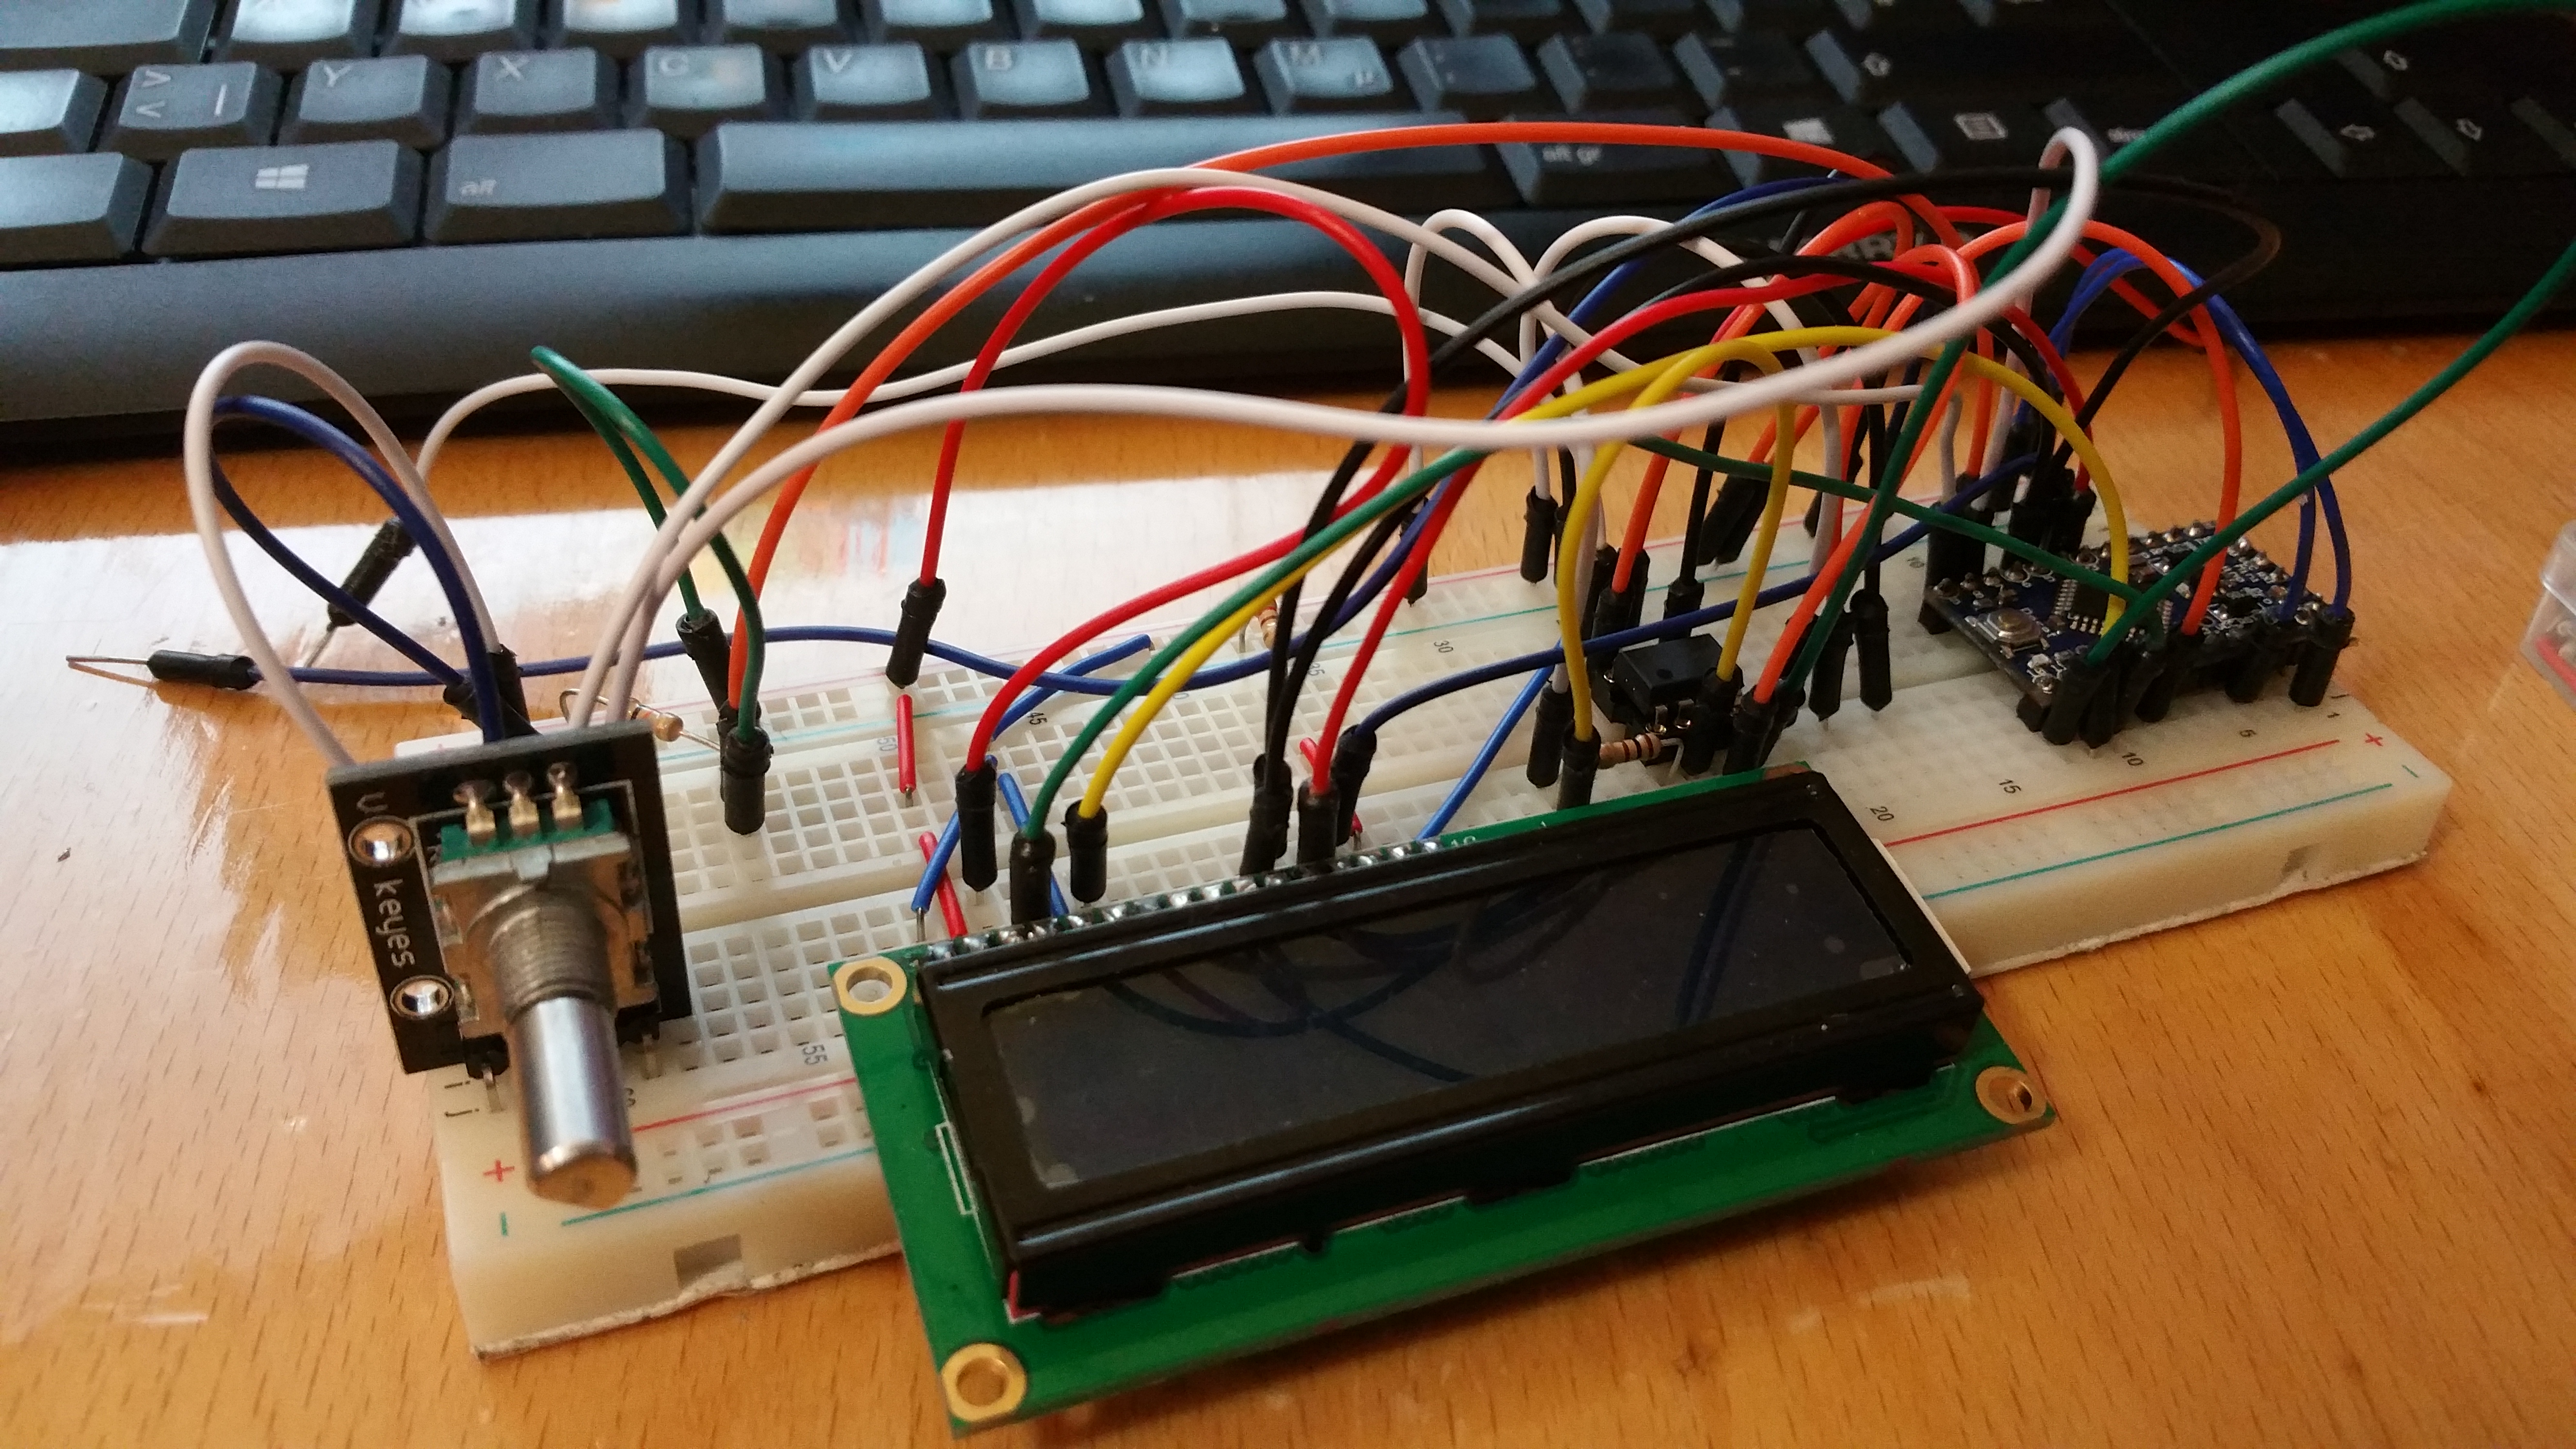 Building a compact arduino based DMX testing device